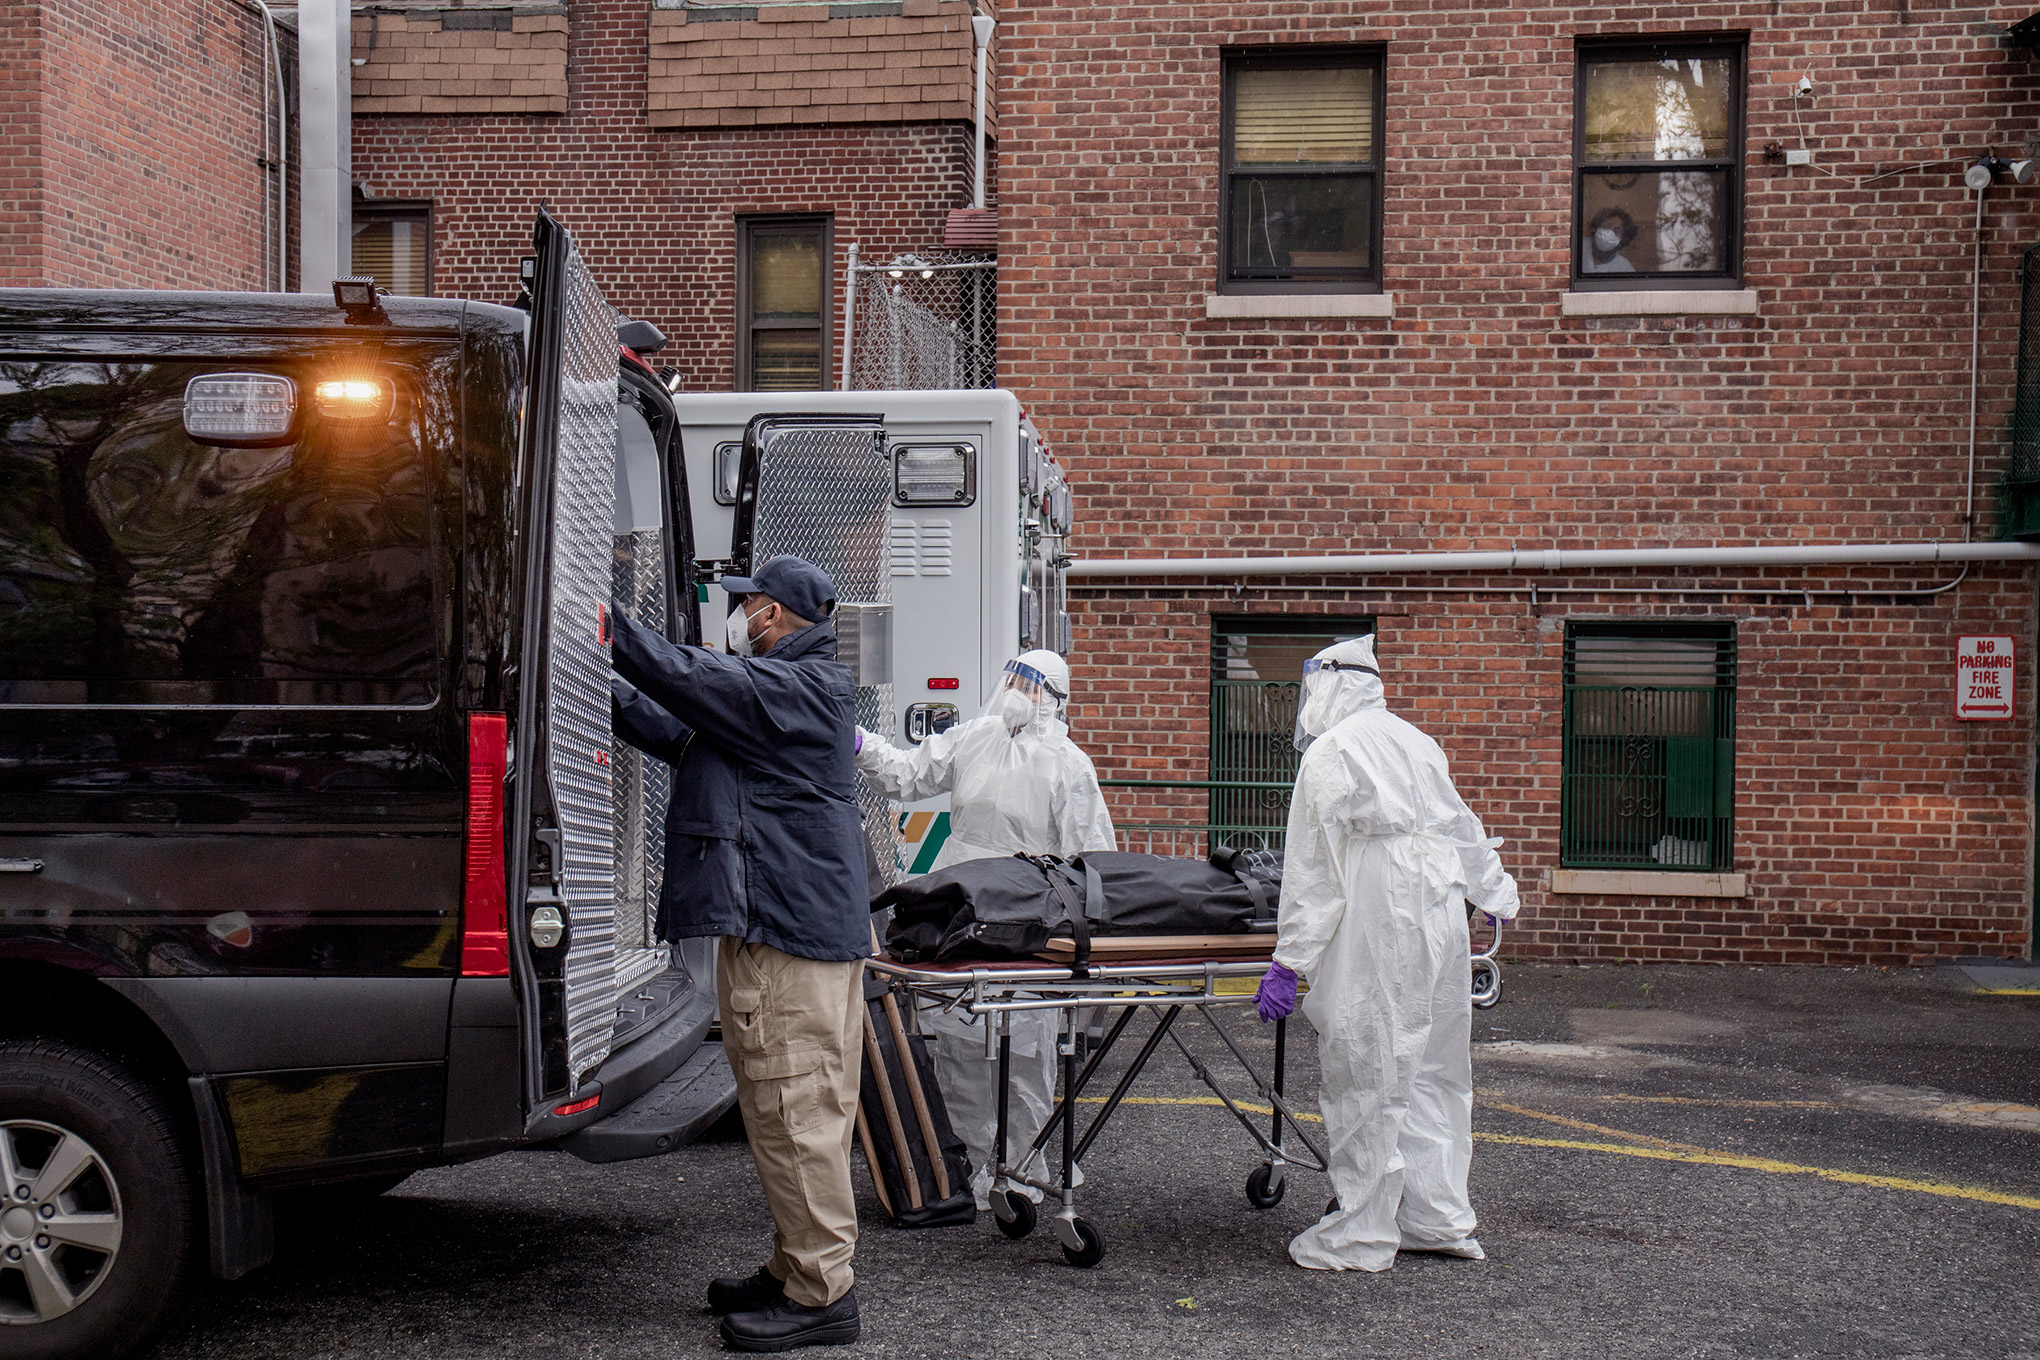 A collection team removes remains from a residence in the Bronx on May 8. Twelve hour shifts have become routine.